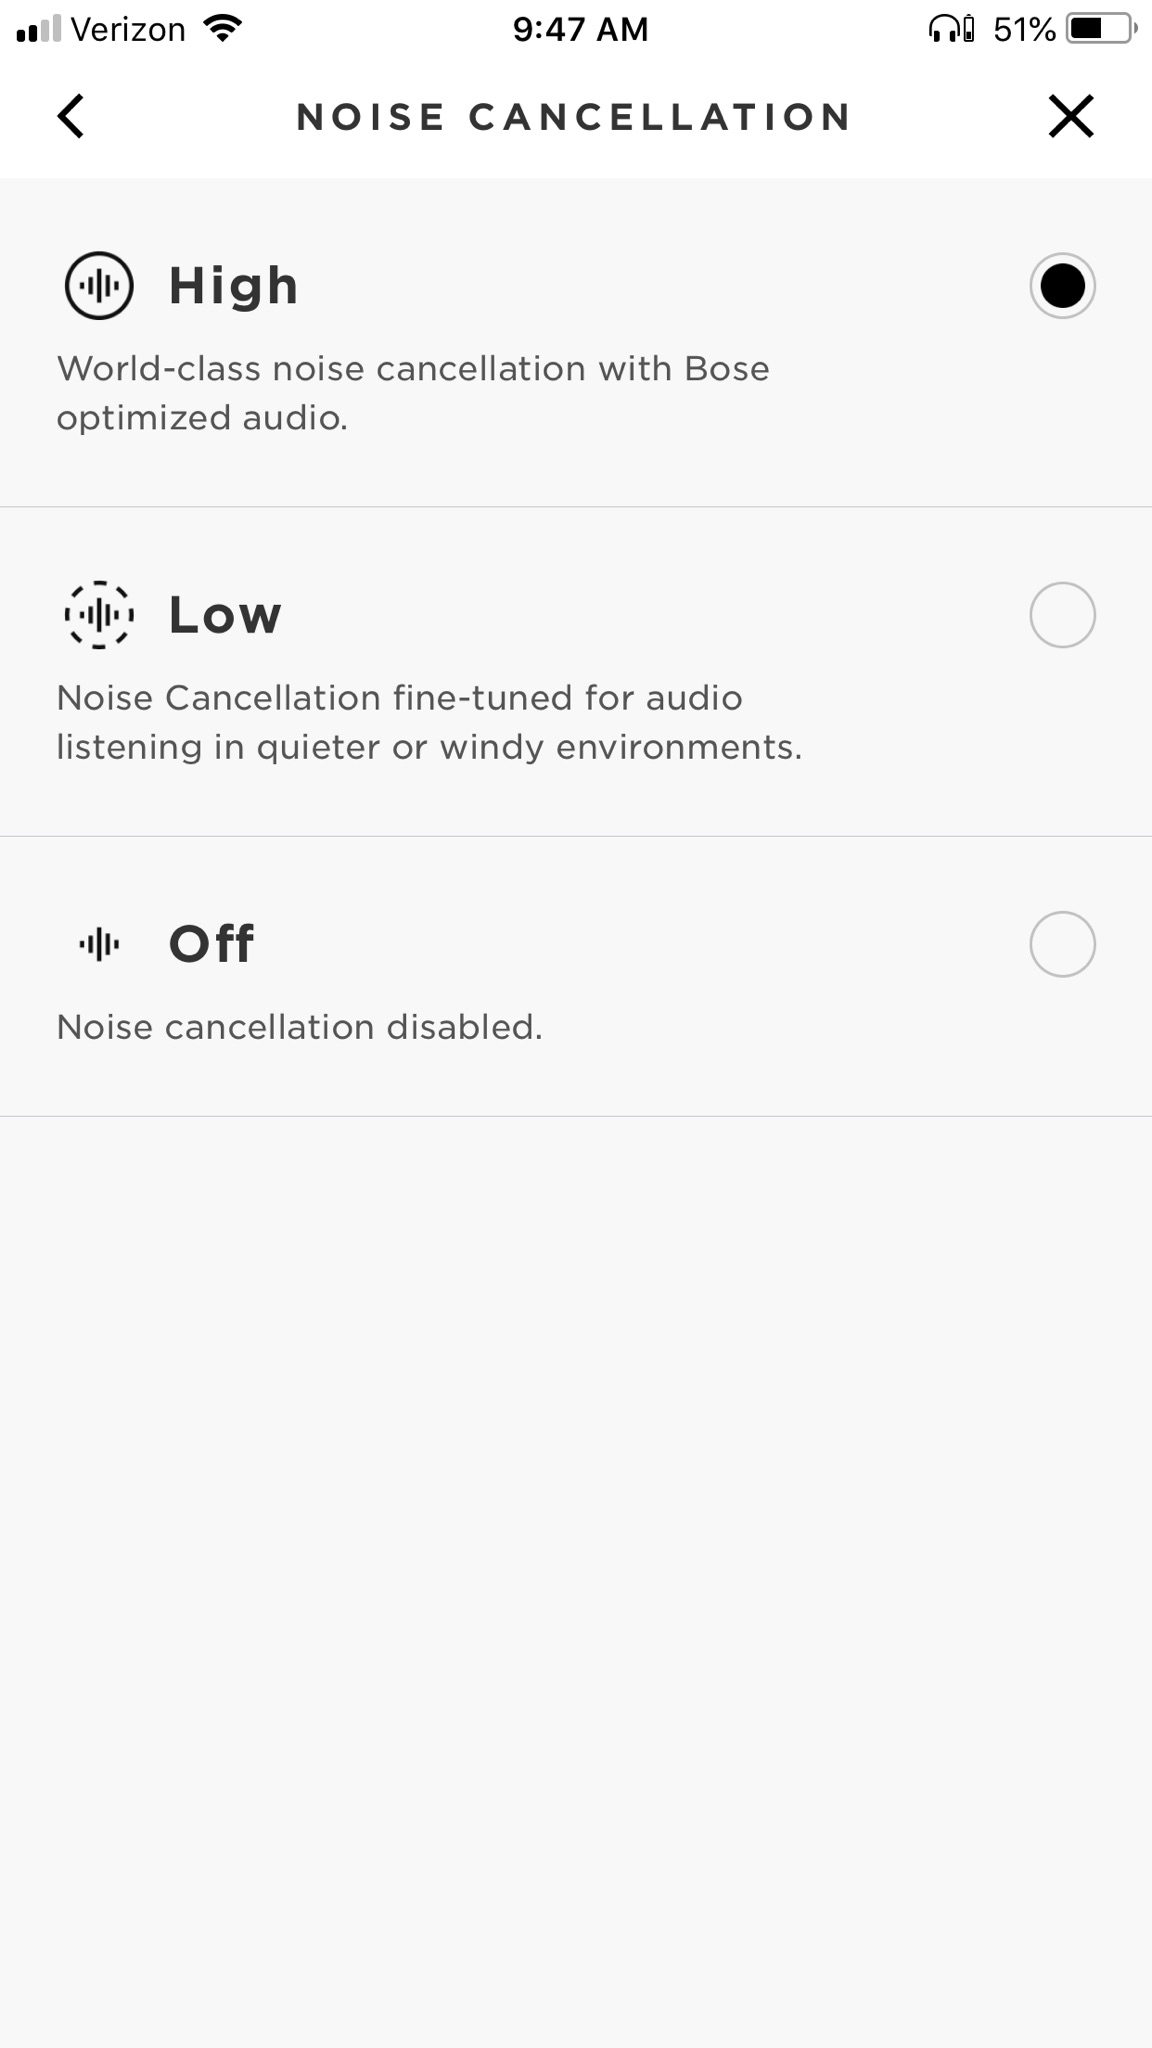 ab9f3e62edc Could you confirm what version of the Bose connect app and what version iOS  you are running?